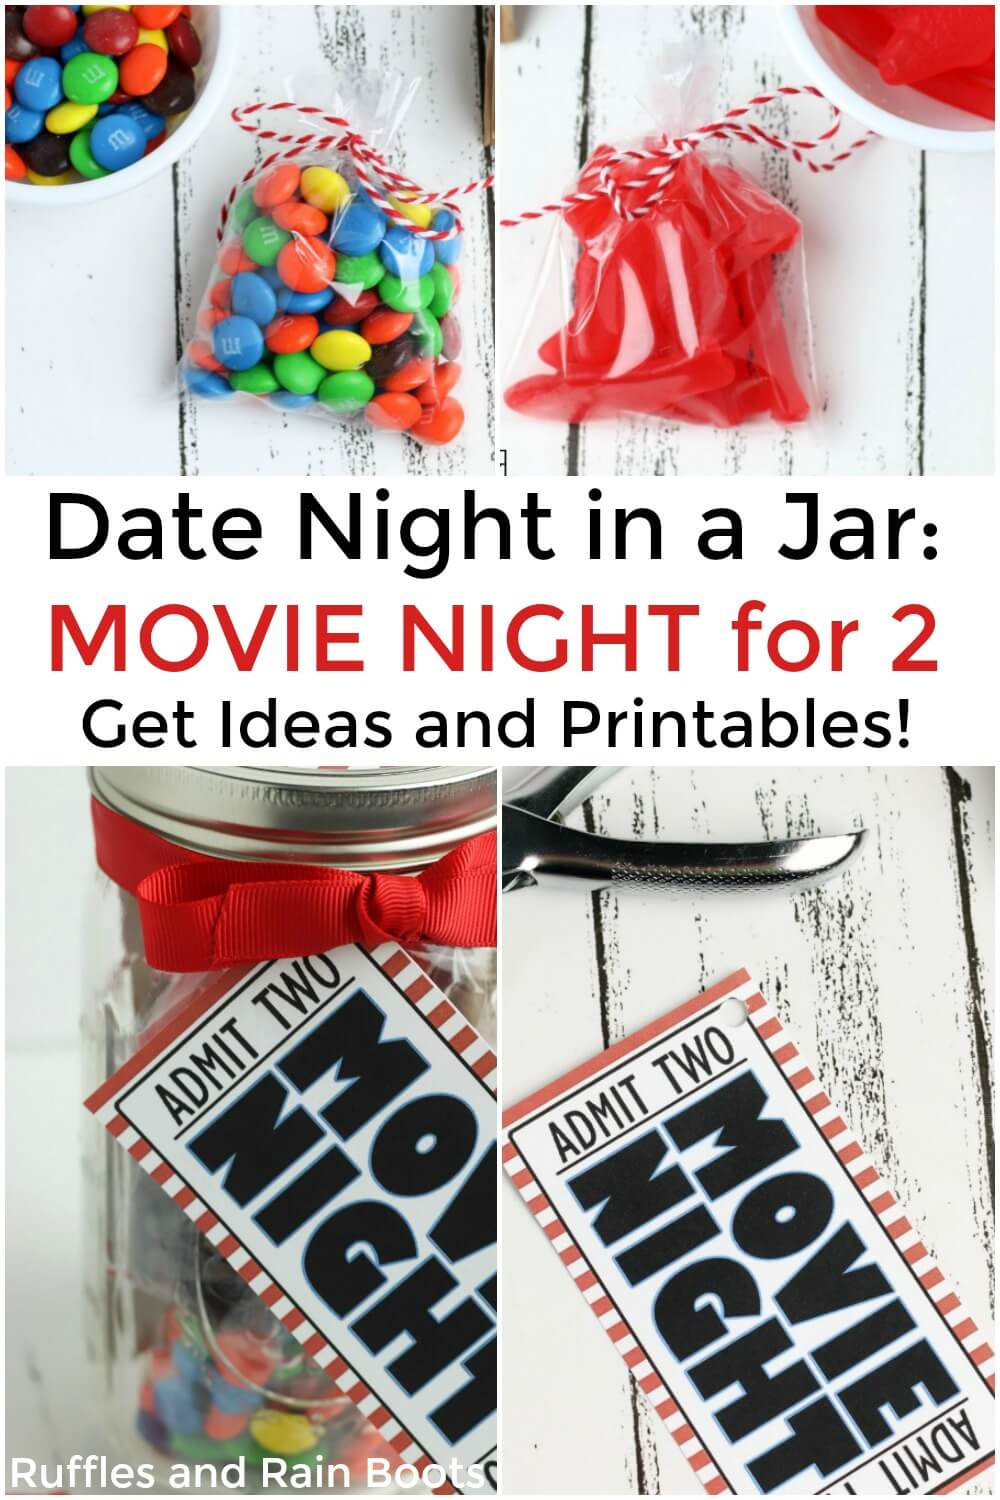 photo collage of movie date night in a jar steps to assemble the movie night in a jar craft with text which reads date night in a jar: movie night for 2 get ideas and printable